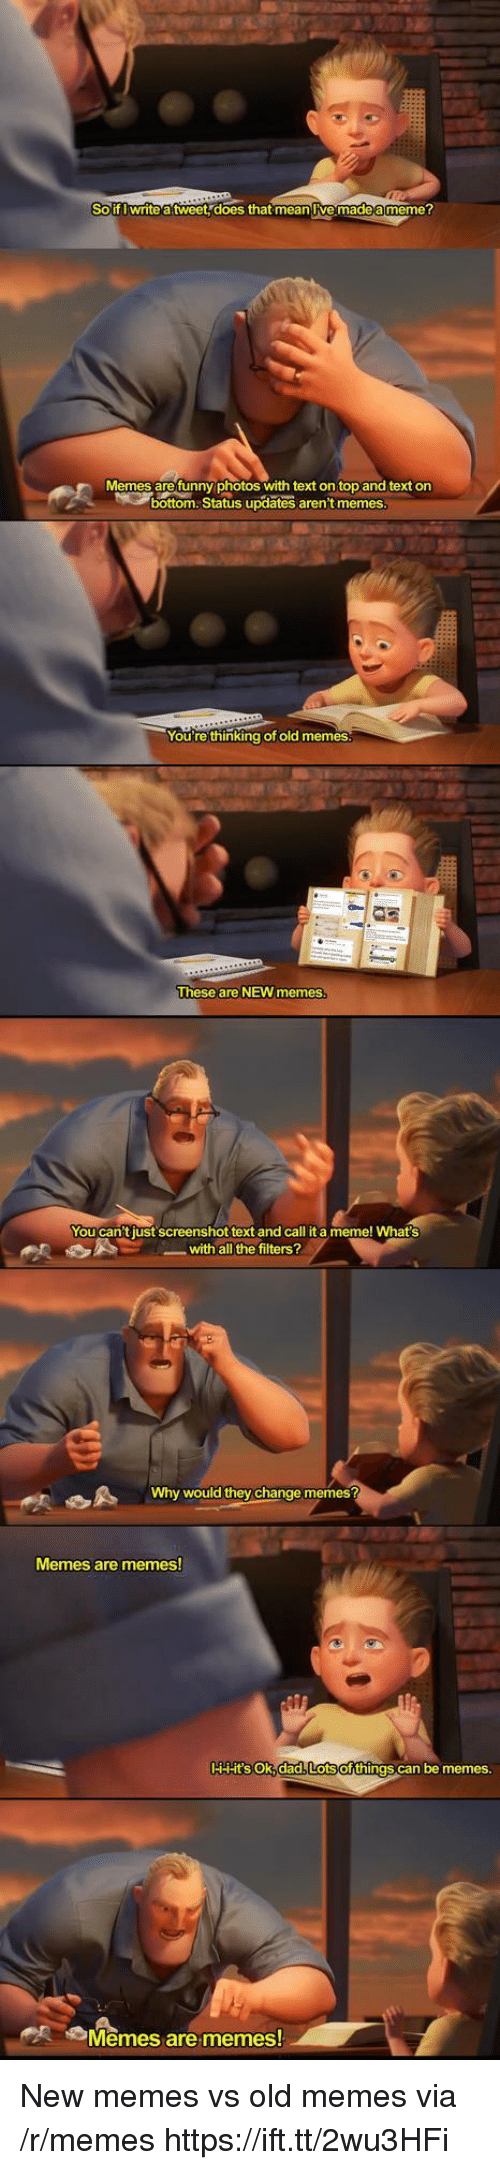 new memes: Solf Iwrite atweet does that mean lve madea meme?  Memes are funny photos with text on top and text on  bottom.Status updates aren't memes  You're thinking ot old memes  These are NEW memes  You can't just screenshot text and call it a meme! What's  with all the filters?  Why would they change memes?  Memes are memes  HHHt'SsoK,dad Lotsofthings can be memes.  Memes arememes New memes vs old memes via /r/memes https://ift.tt/2wu3HFi